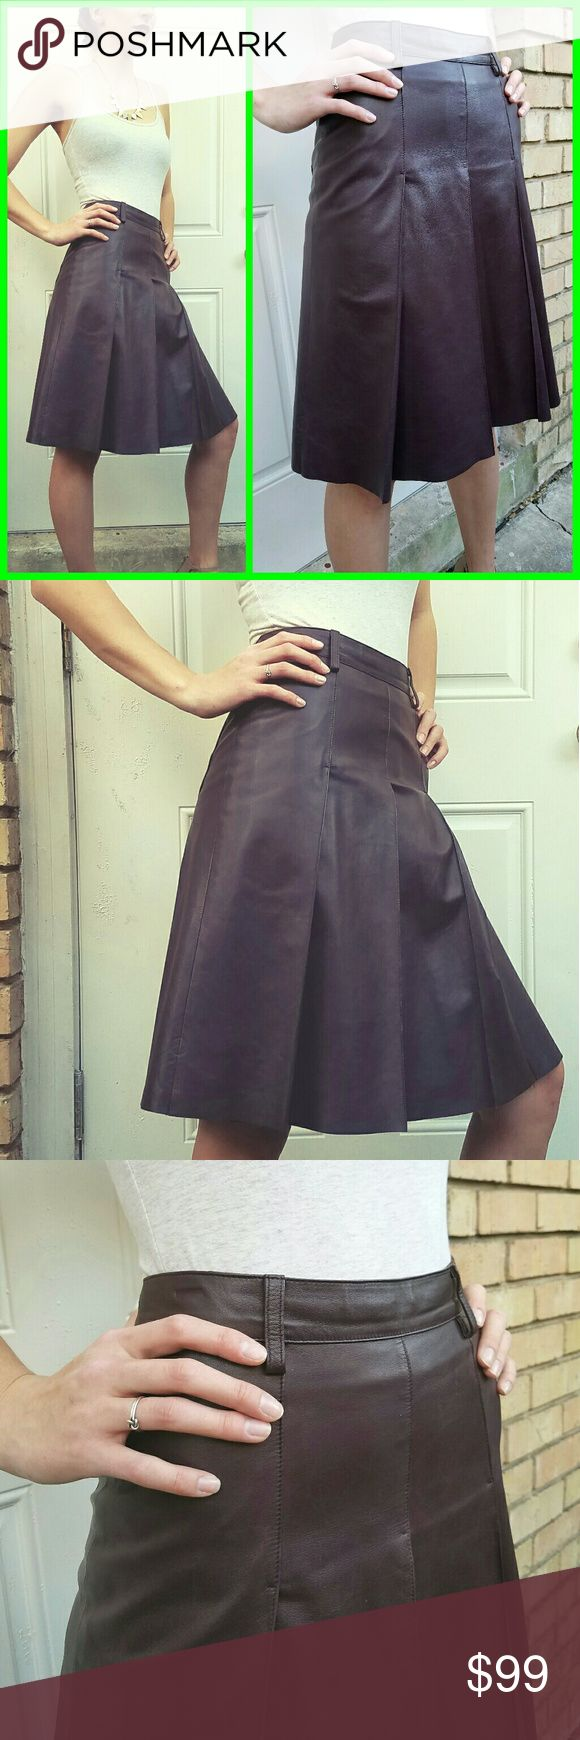 "Vintage  $1100 MIU MIU Wine LEATHER A-LINE Skirt ABSOLUTELY FABULOUS vintage 2003 MIU MIU PRADA-era Wine Leather A-LINE Skirt...TO DIE FOR!   Thick, durable AND EXTREMELY HIGH-END  ******CURRENT RETAIL FOR MIU MIU A-LINE LEATHER SKIRT OF THIS QUALITY IS $1100.******   RARE COLOR IS BEAUTIFUL and goes with EVERYTHING!   Marked a size IT 40 - fits a current U.S size Small:  Approx 24"" long, 27/28"" waist, up to 40"" at hips~ Vintage  Skirts A-Line or Full"